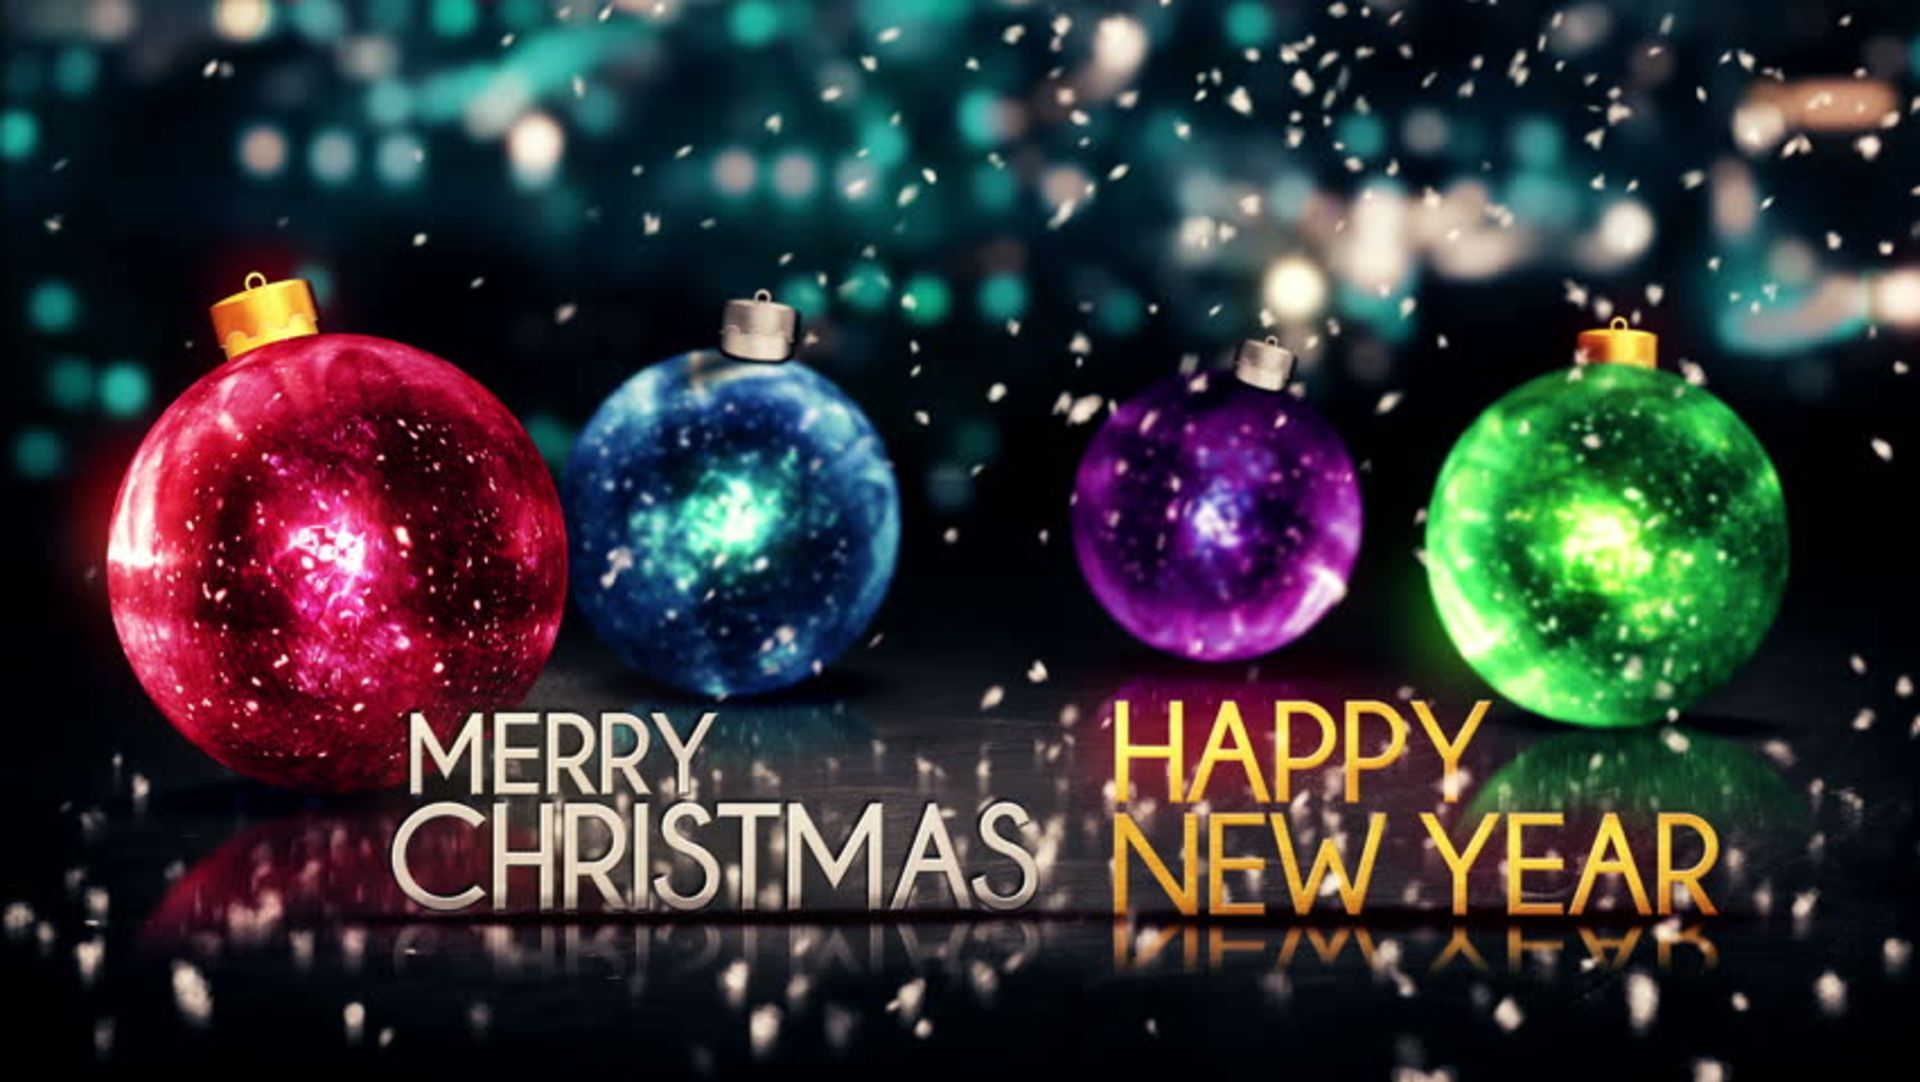 Merry Christmas from The Michigan Real Estate Resource Team